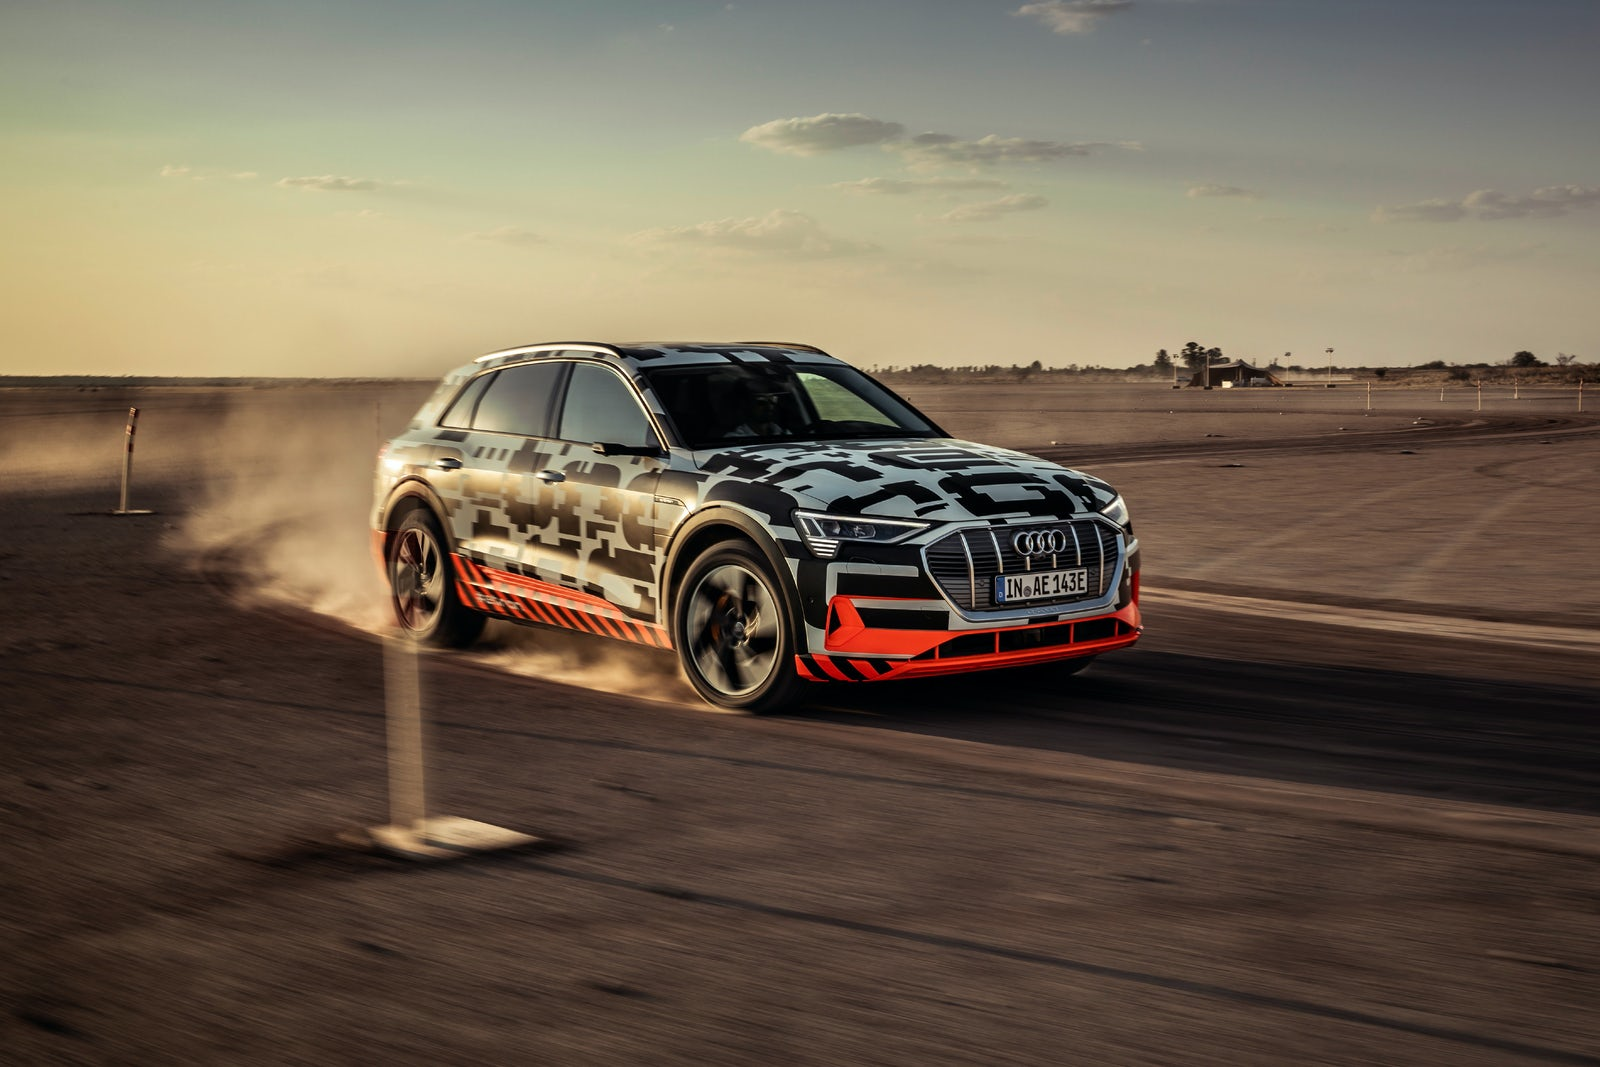 Audis Quattro All Wheel Drive System Explained Carwow Shw Me Transfer Case Diagram The Audi E Tron Has Electric Motors That Open A World Of New Possibilities